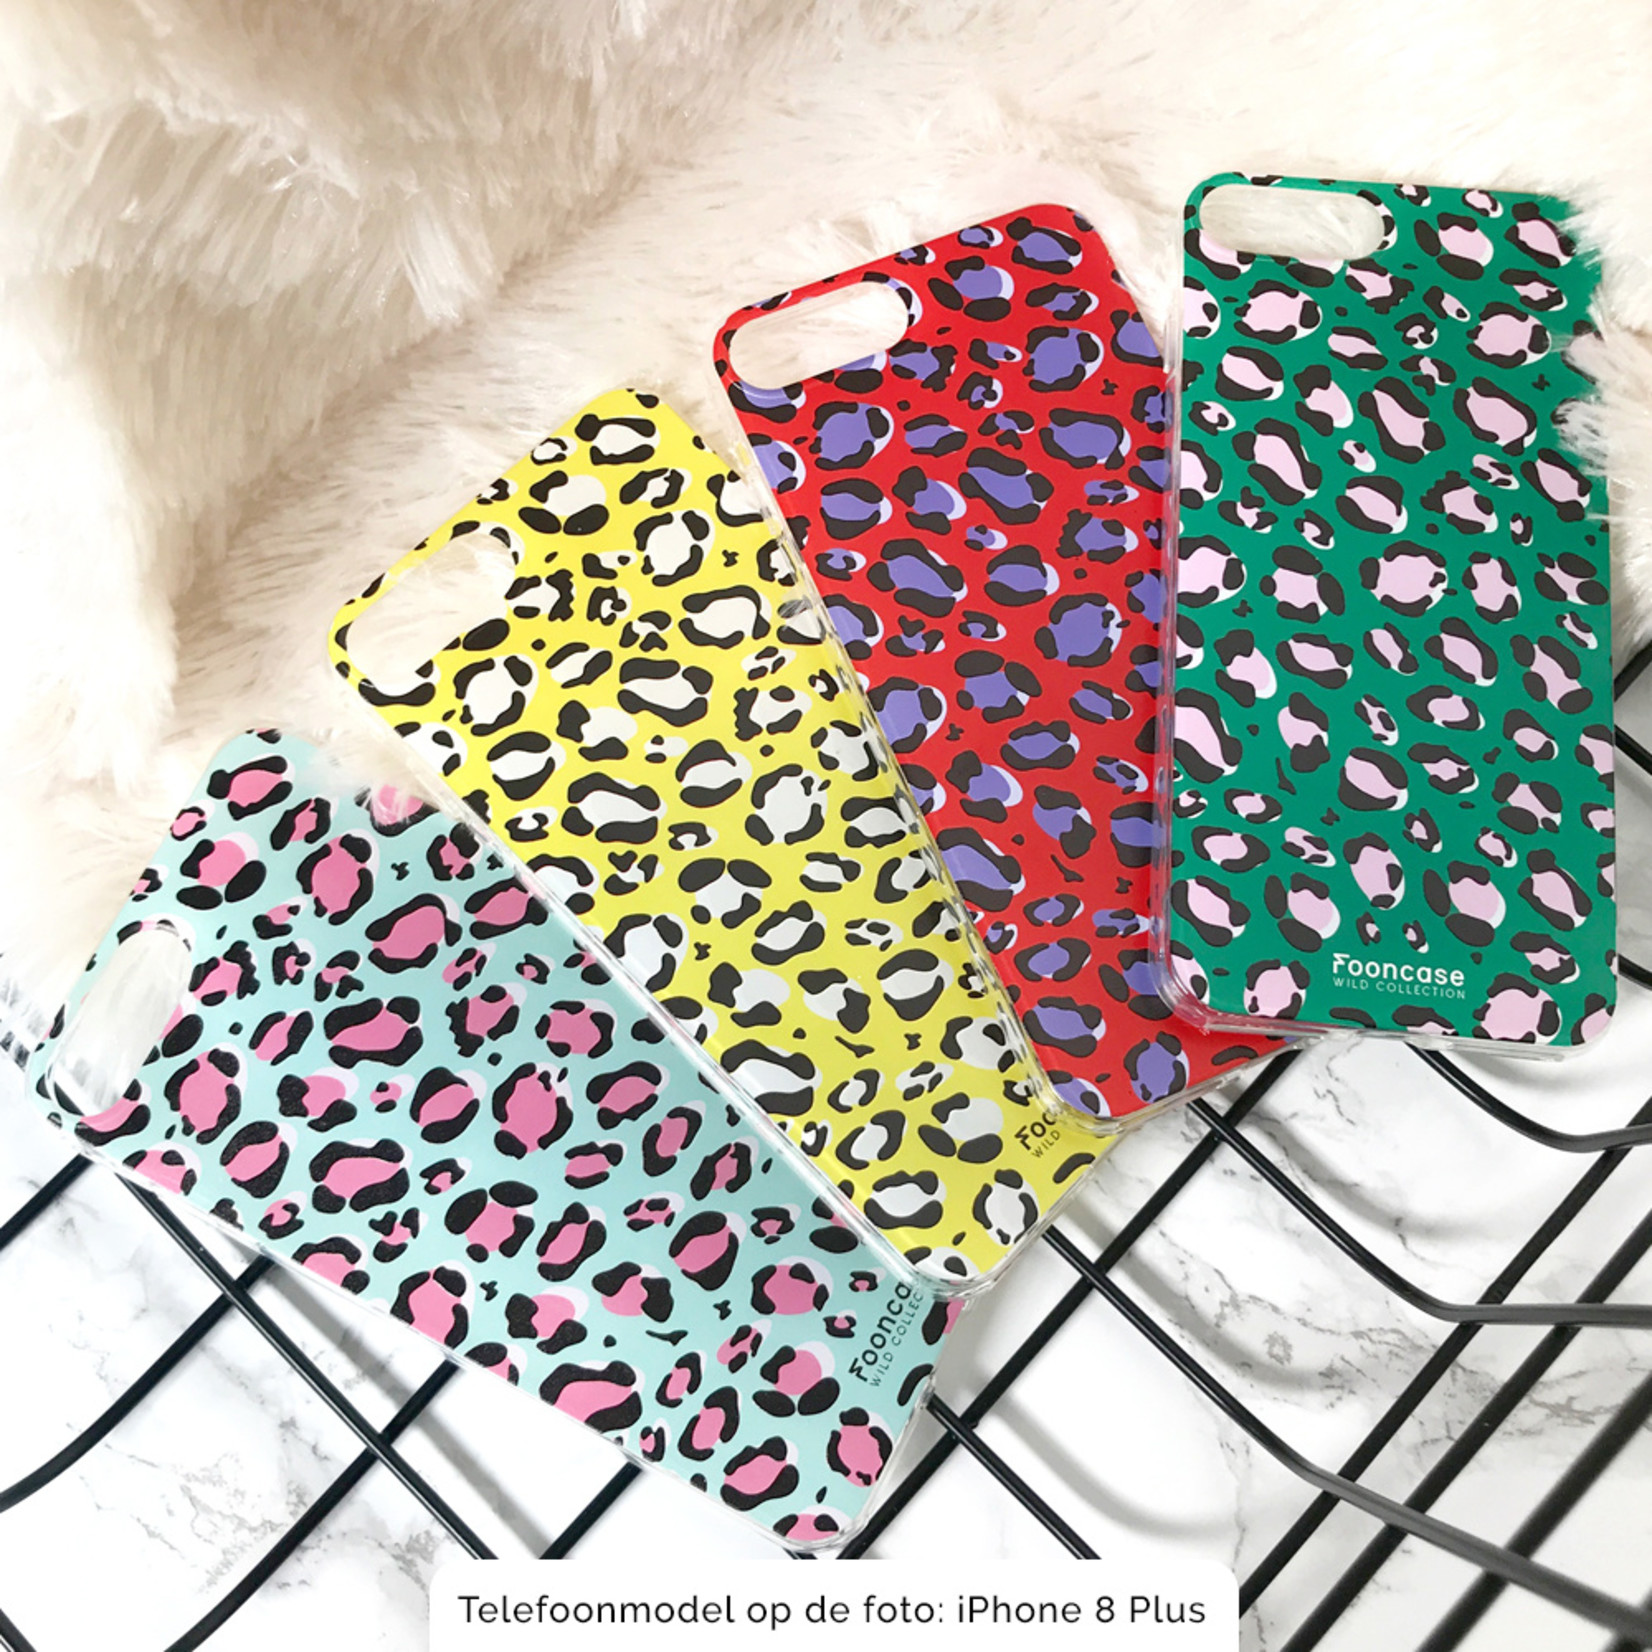 FOONCASE iPhone 7 hoesje TPU Soft Case - Back Cover - WILD COLLECTION / Luipaard / Leopard print / Blauw